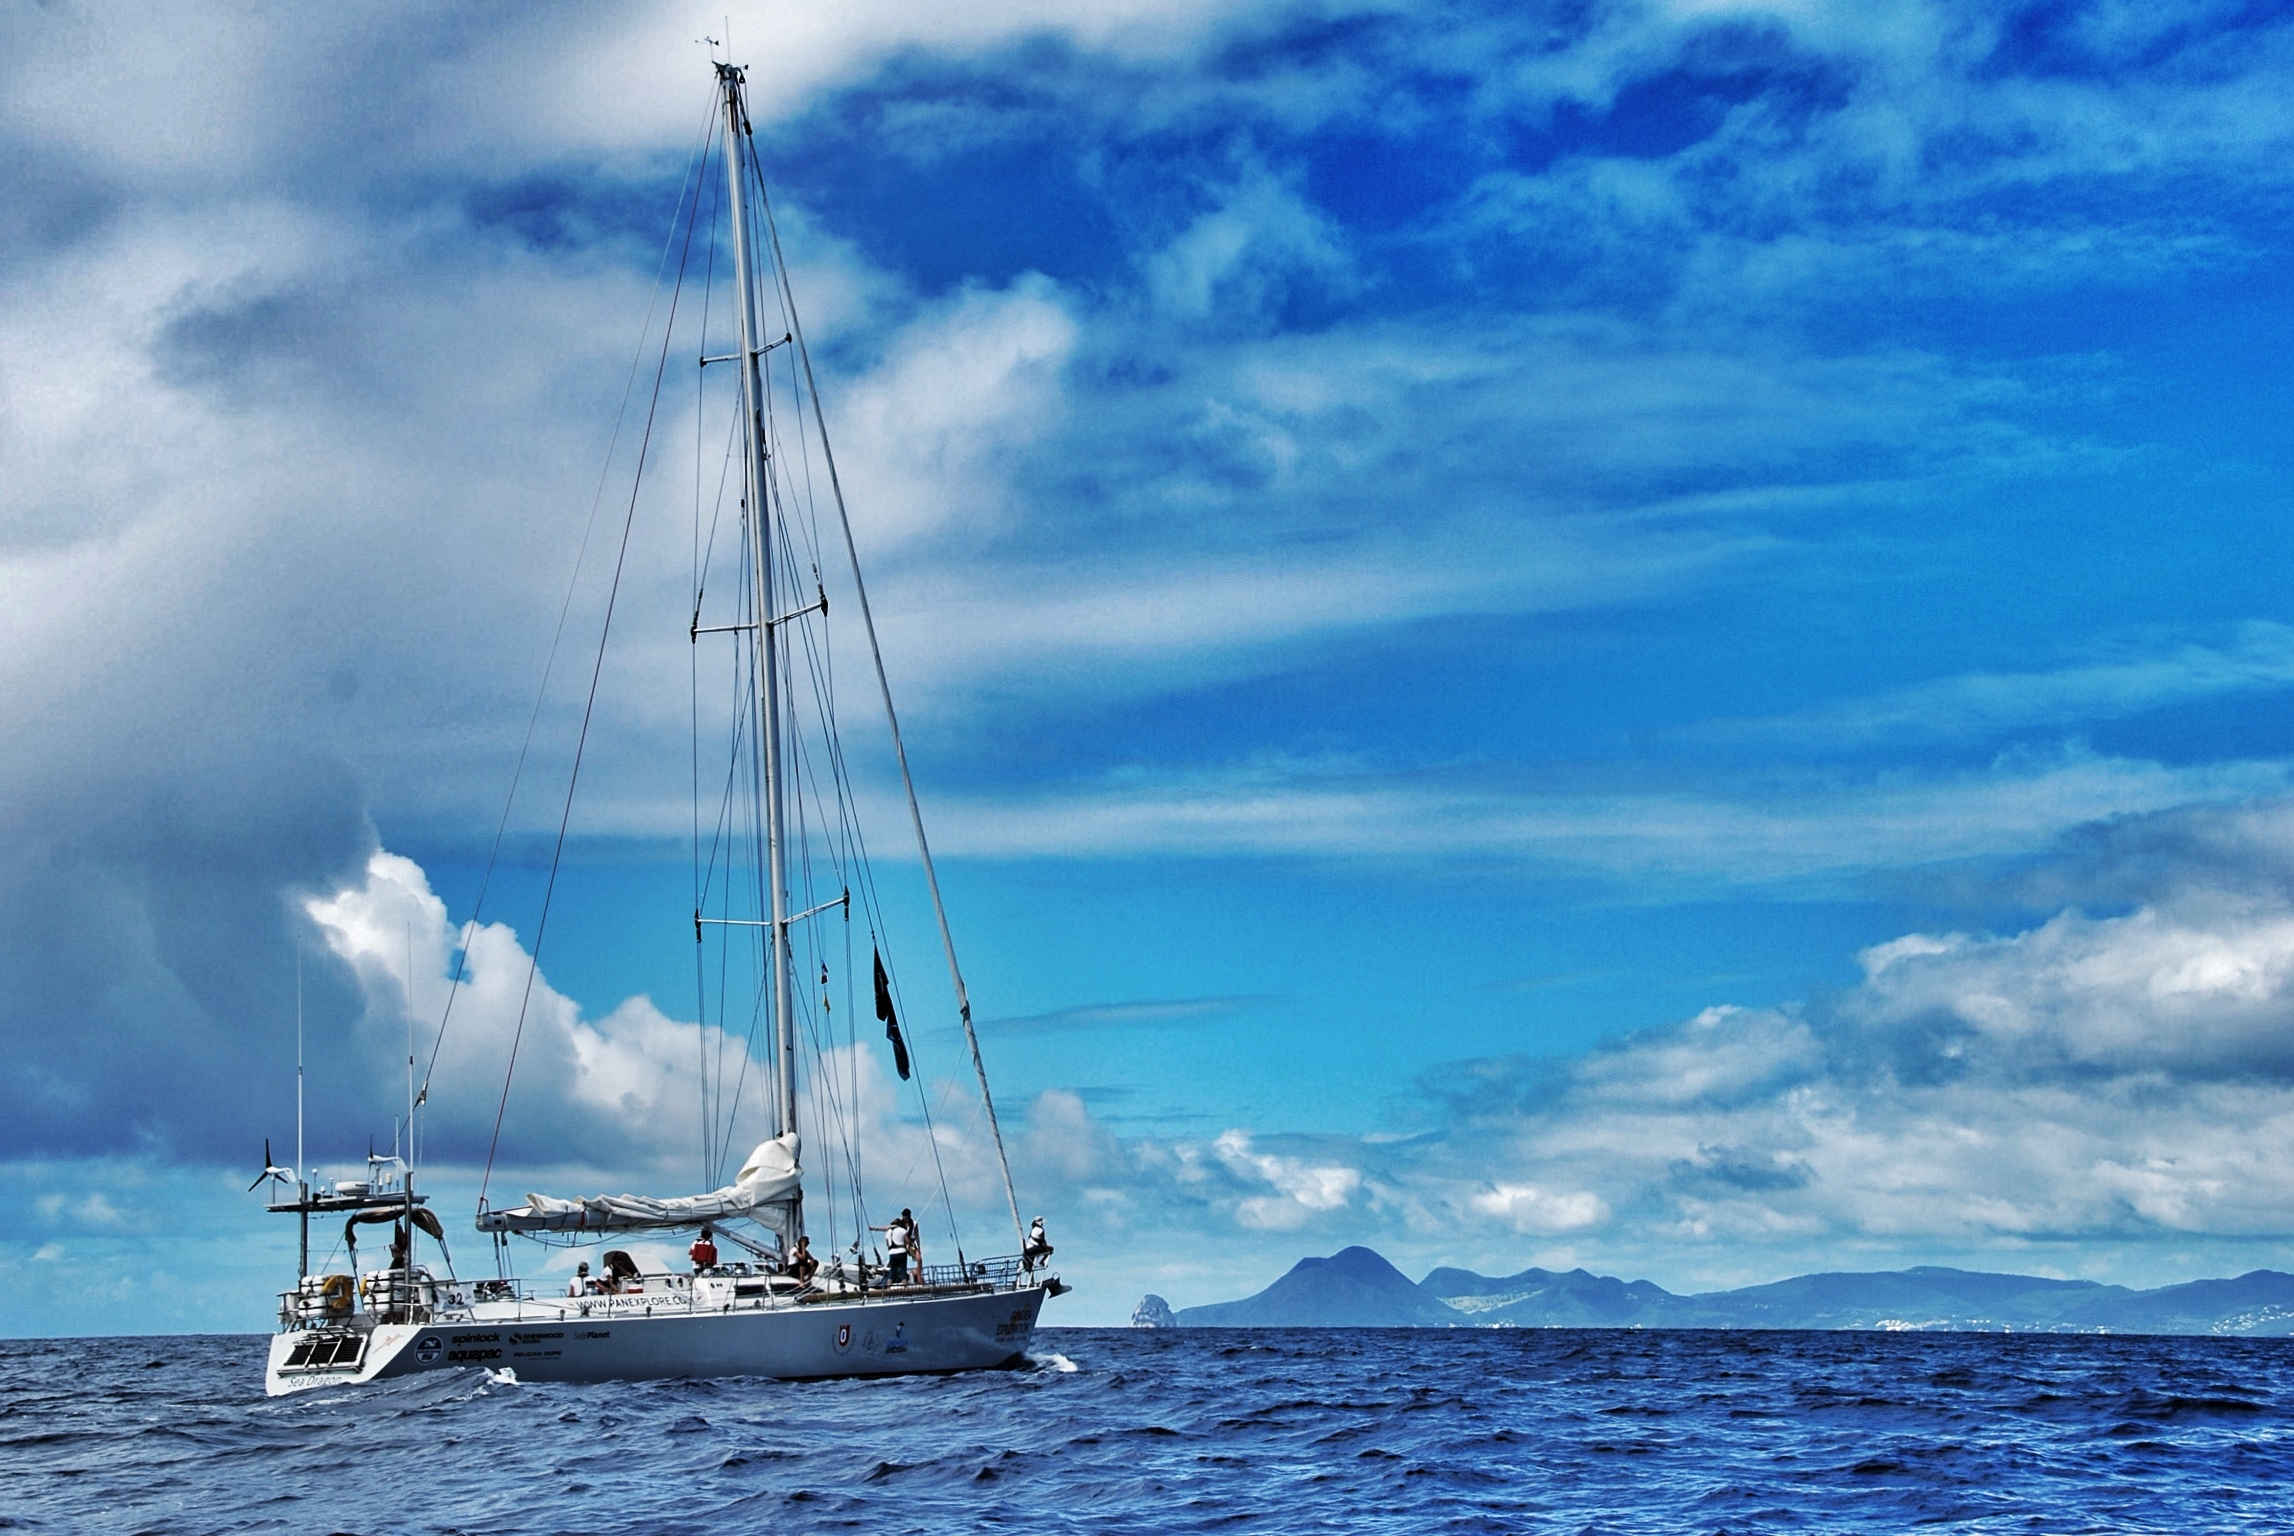 The yacht Sea Dragon, which will sail around the British Isles (eXXpedition)